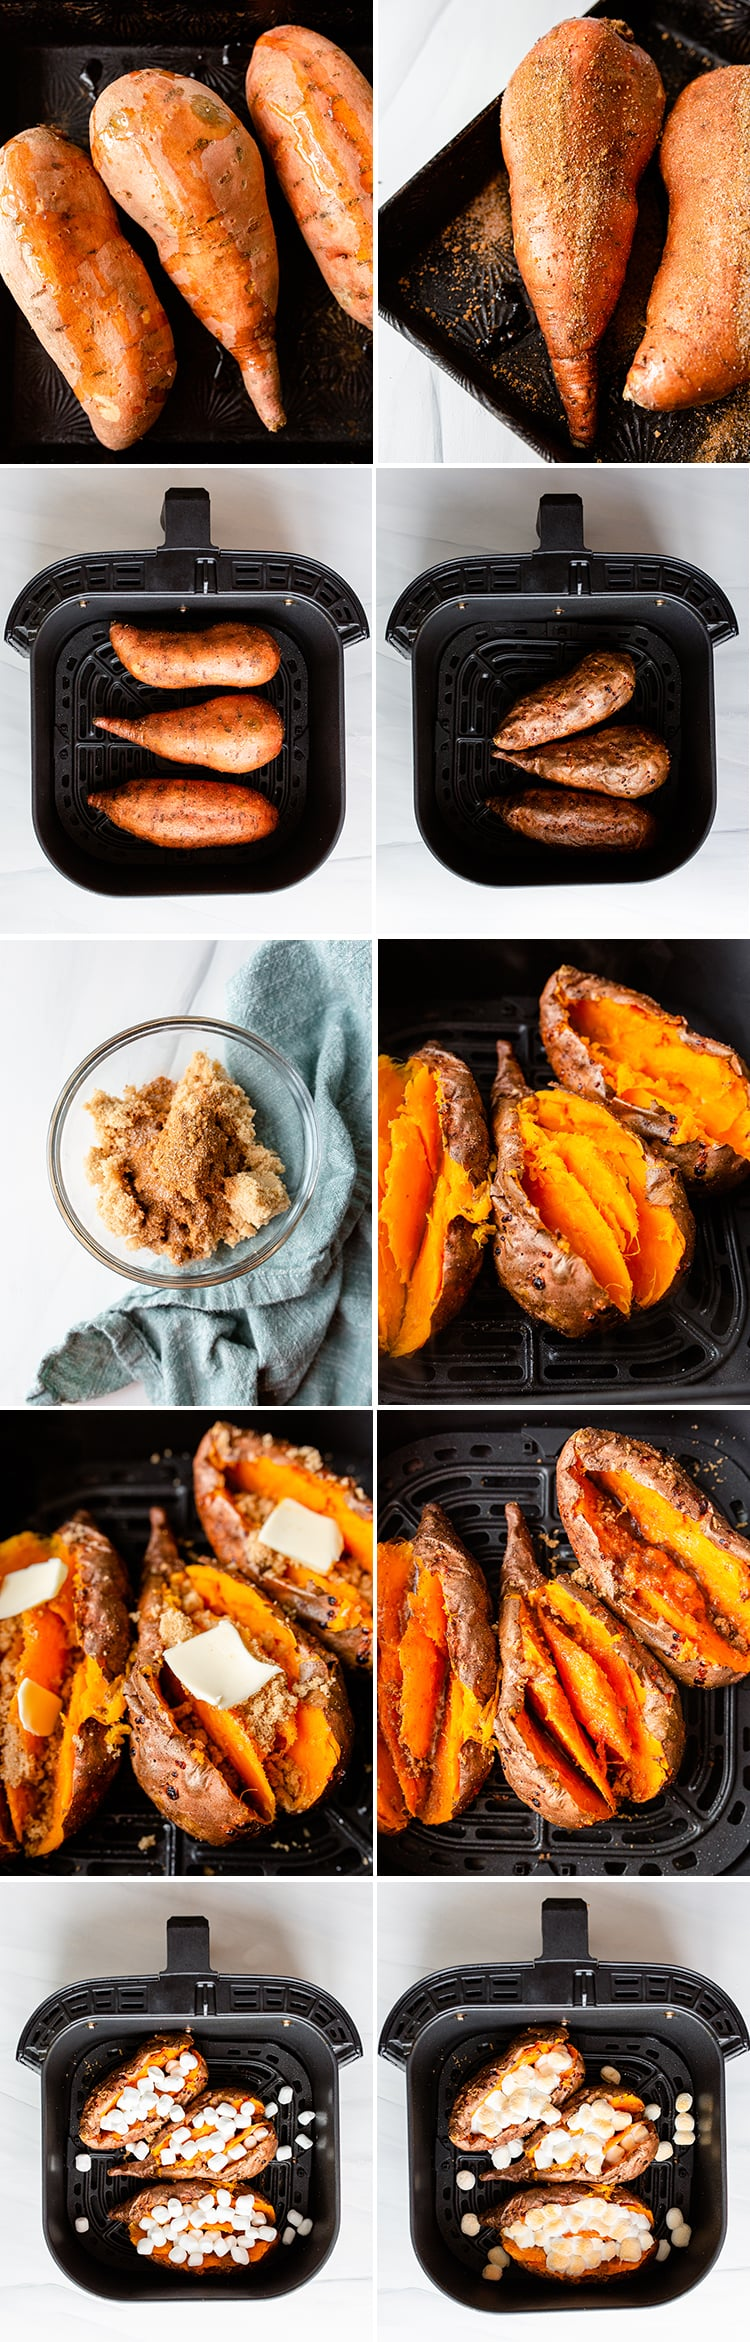 Step by step photos showing how to make twice baked sweet potatoes in the air fryer.